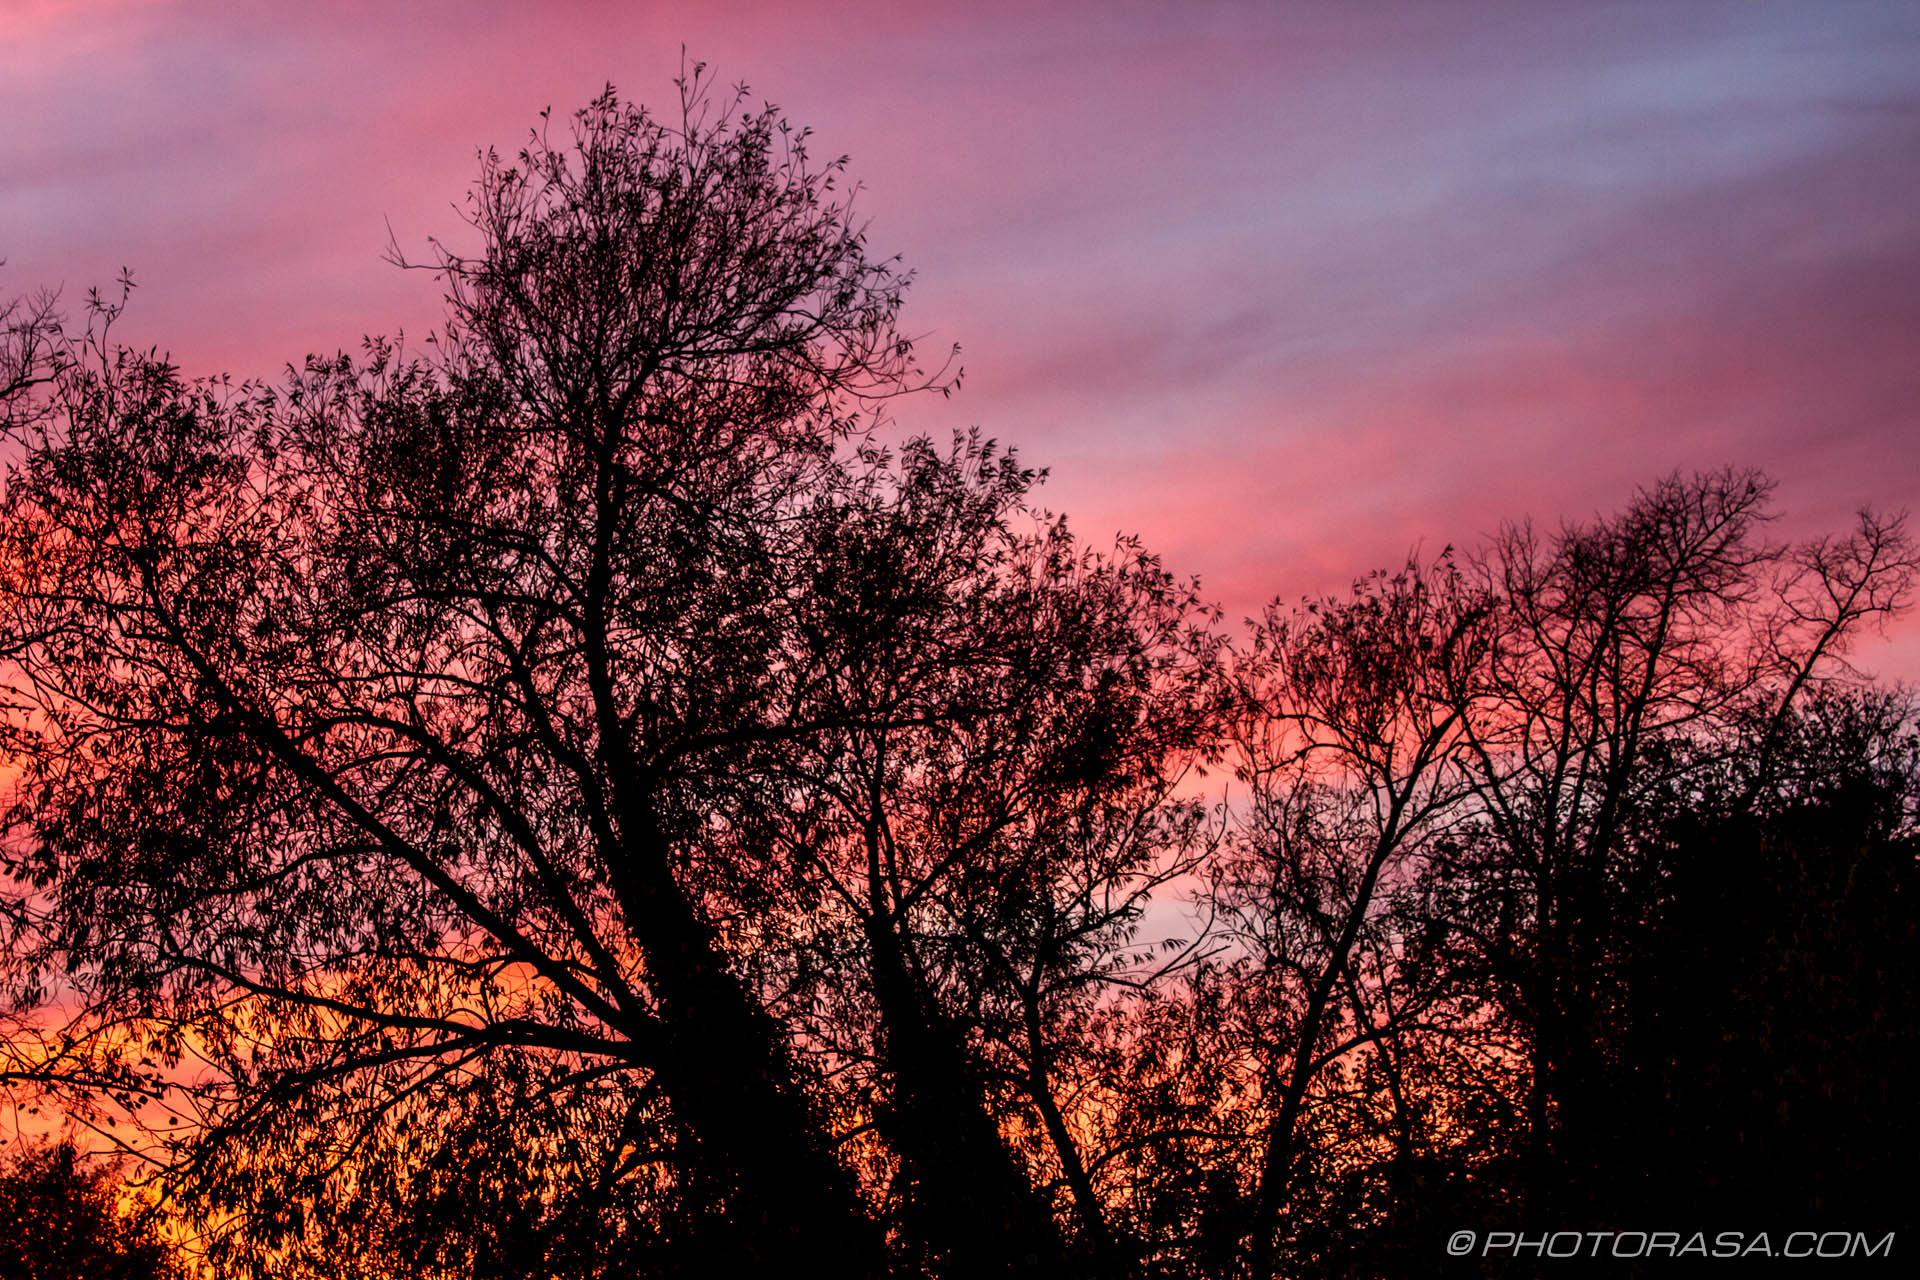 http://photorasa.com/red-sky-night/red-sky-through-the-trees/